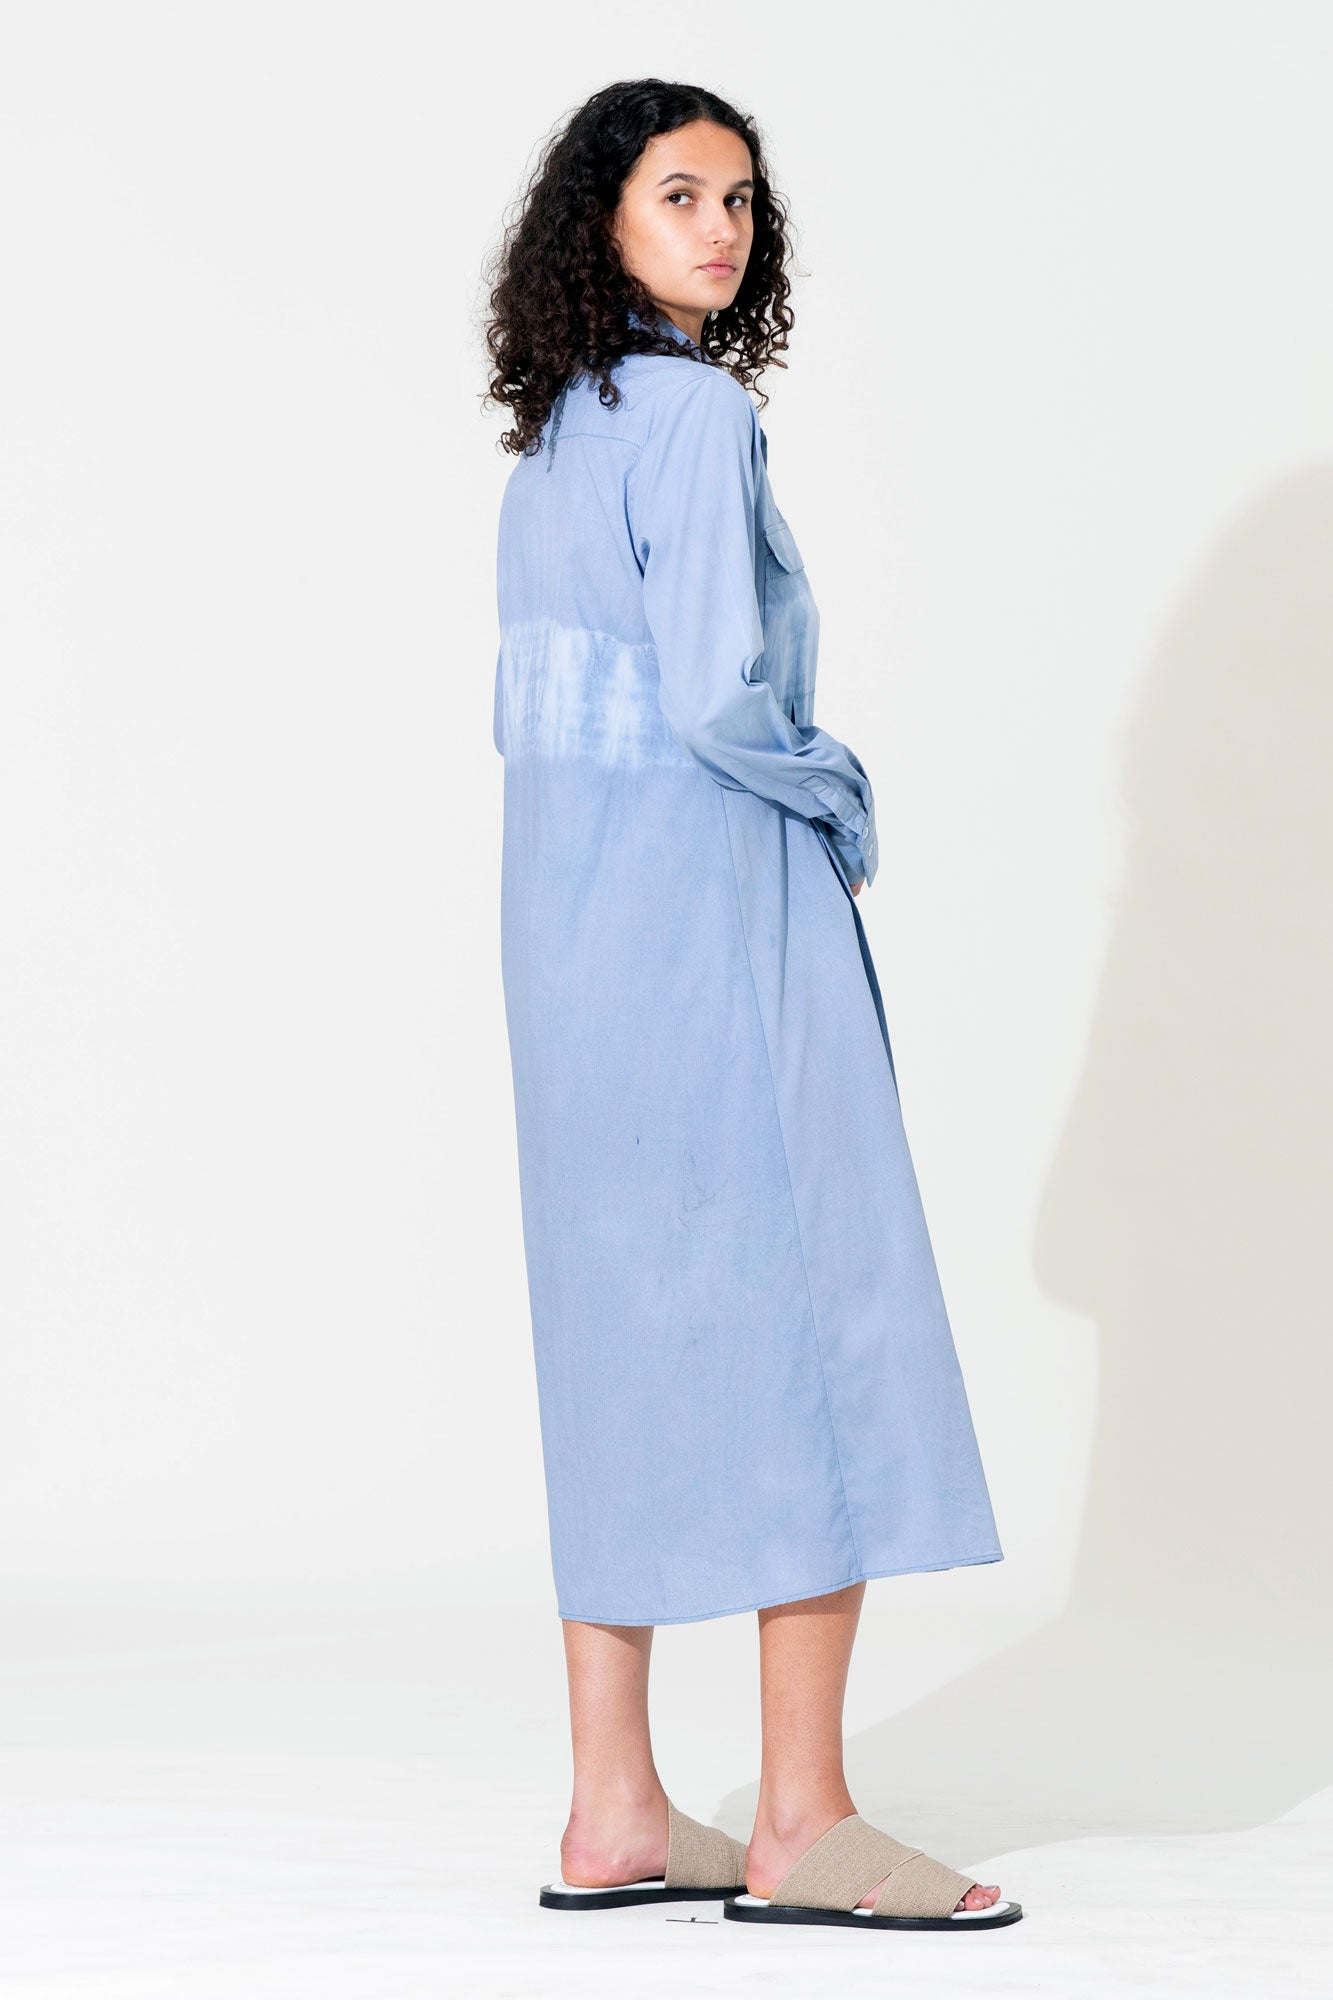 Pleat Tie-Dye Shirt Dress - Blue